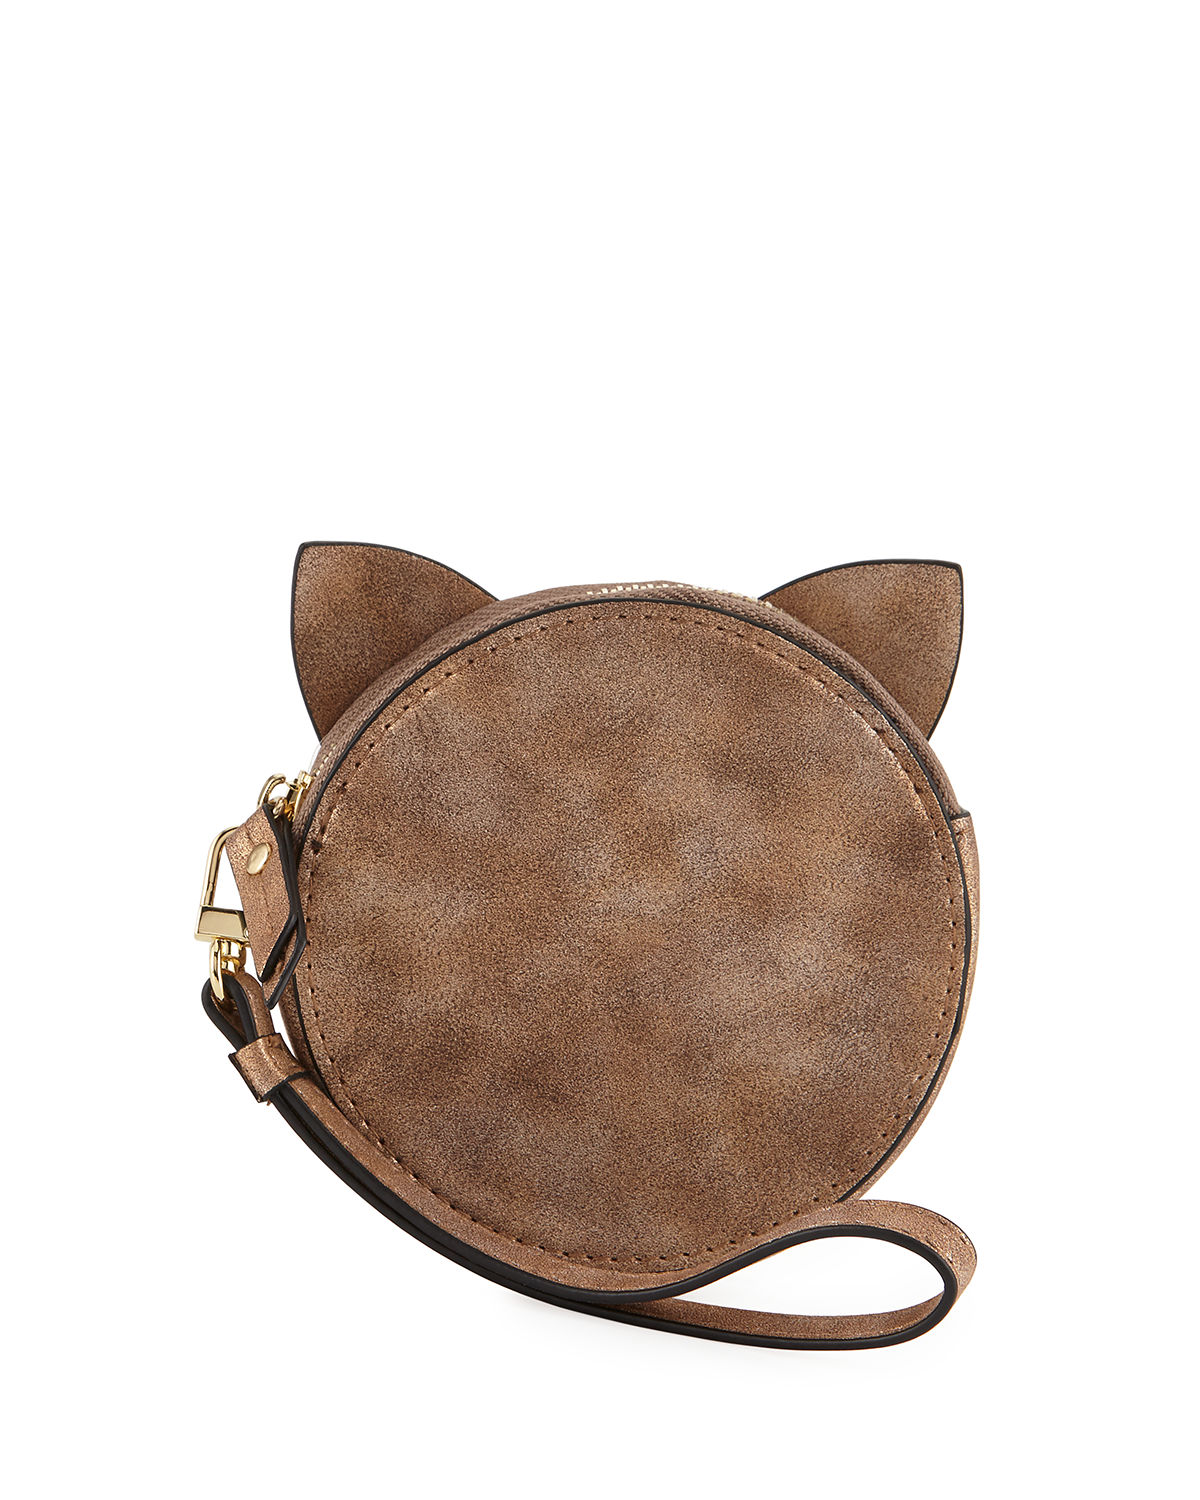 Cat Ears Round Coin Purse